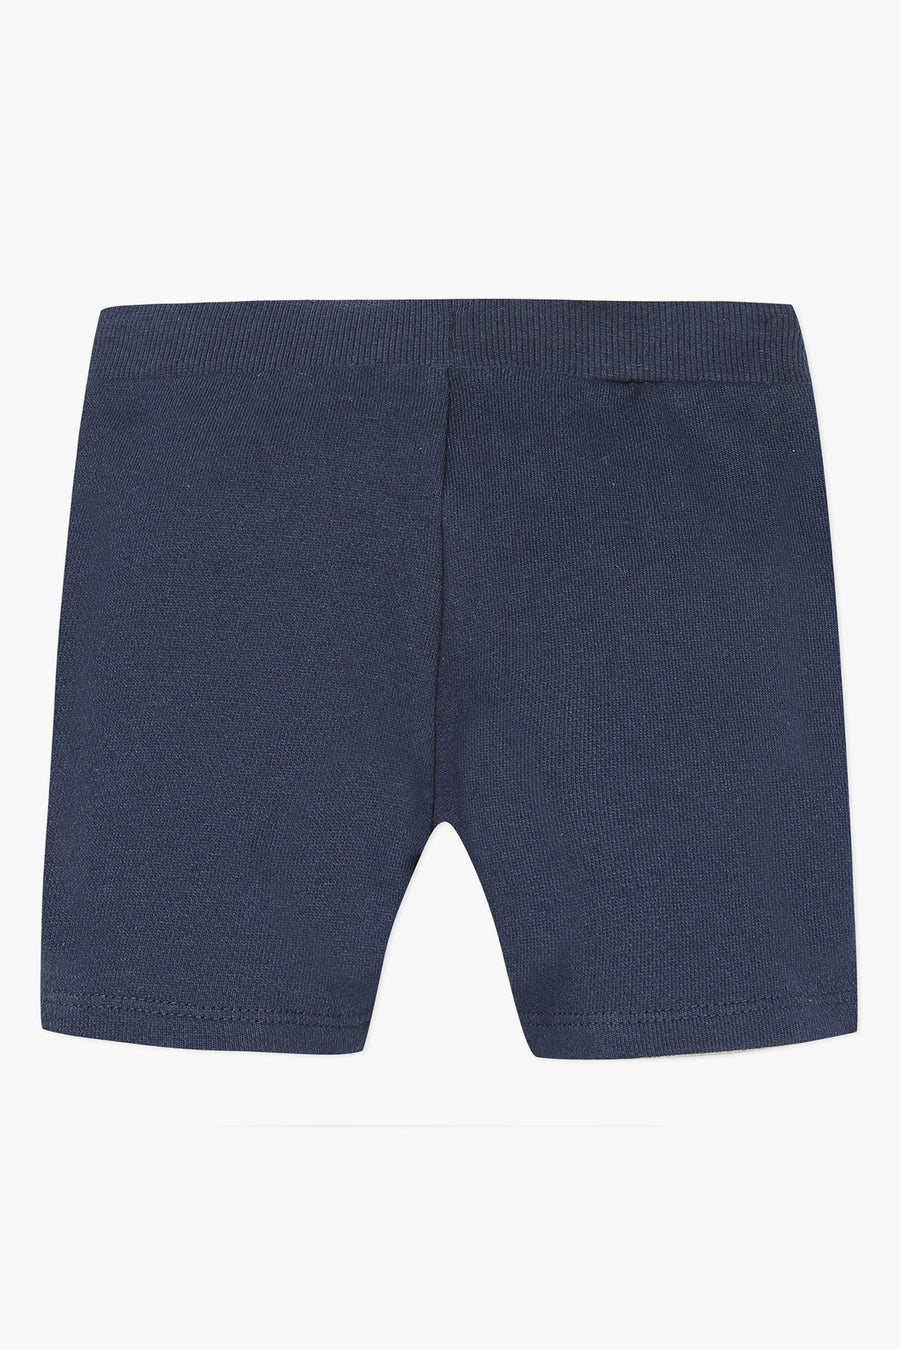 3pommes Navy Baby Boys Shorts